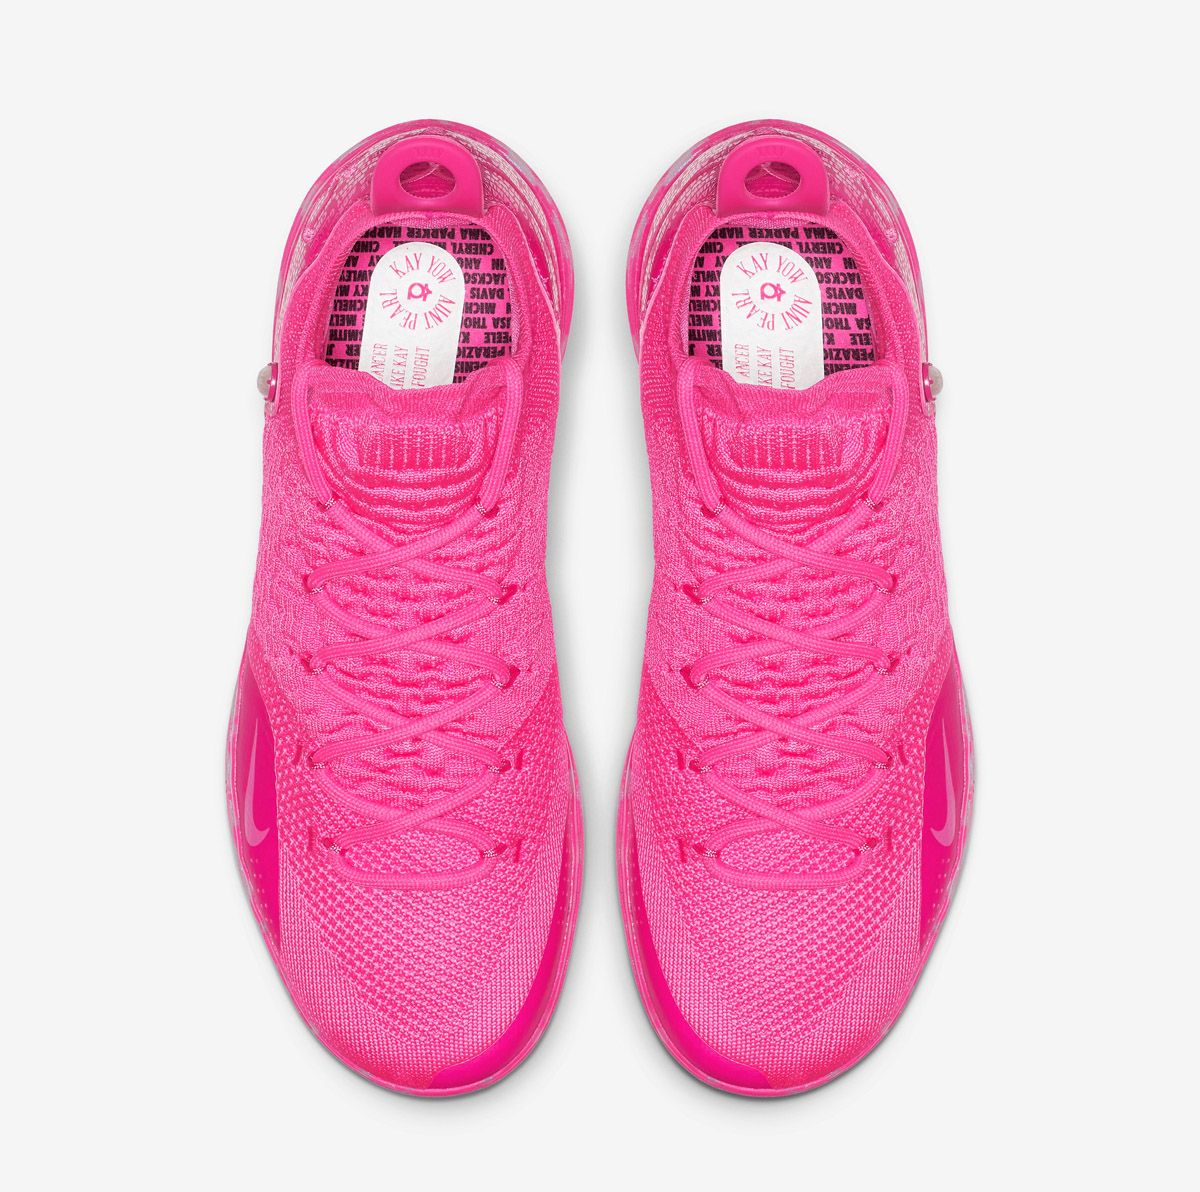 """7adb77522b5b The Nike KD 11 """"Aunt Pearl"""" Honors 59 Cancer Survivors - HOUSE OF ..."""